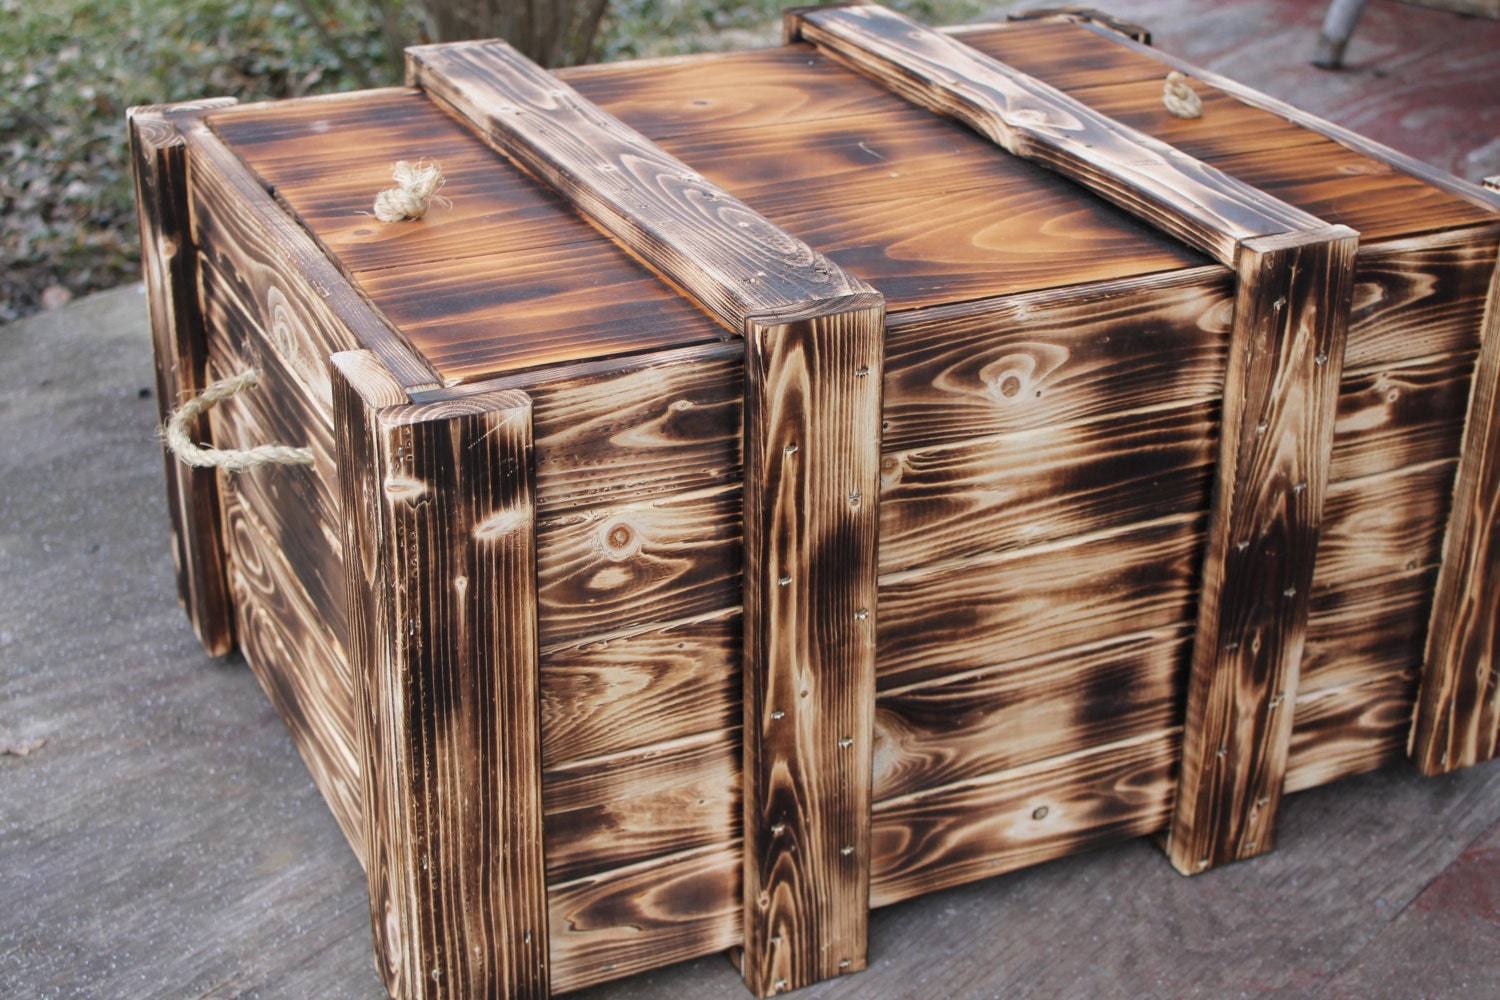 wood crate handmade foot locker toy box storage by jbakerdesign. Black Bedroom Furniture Sets. Home Design Ideas